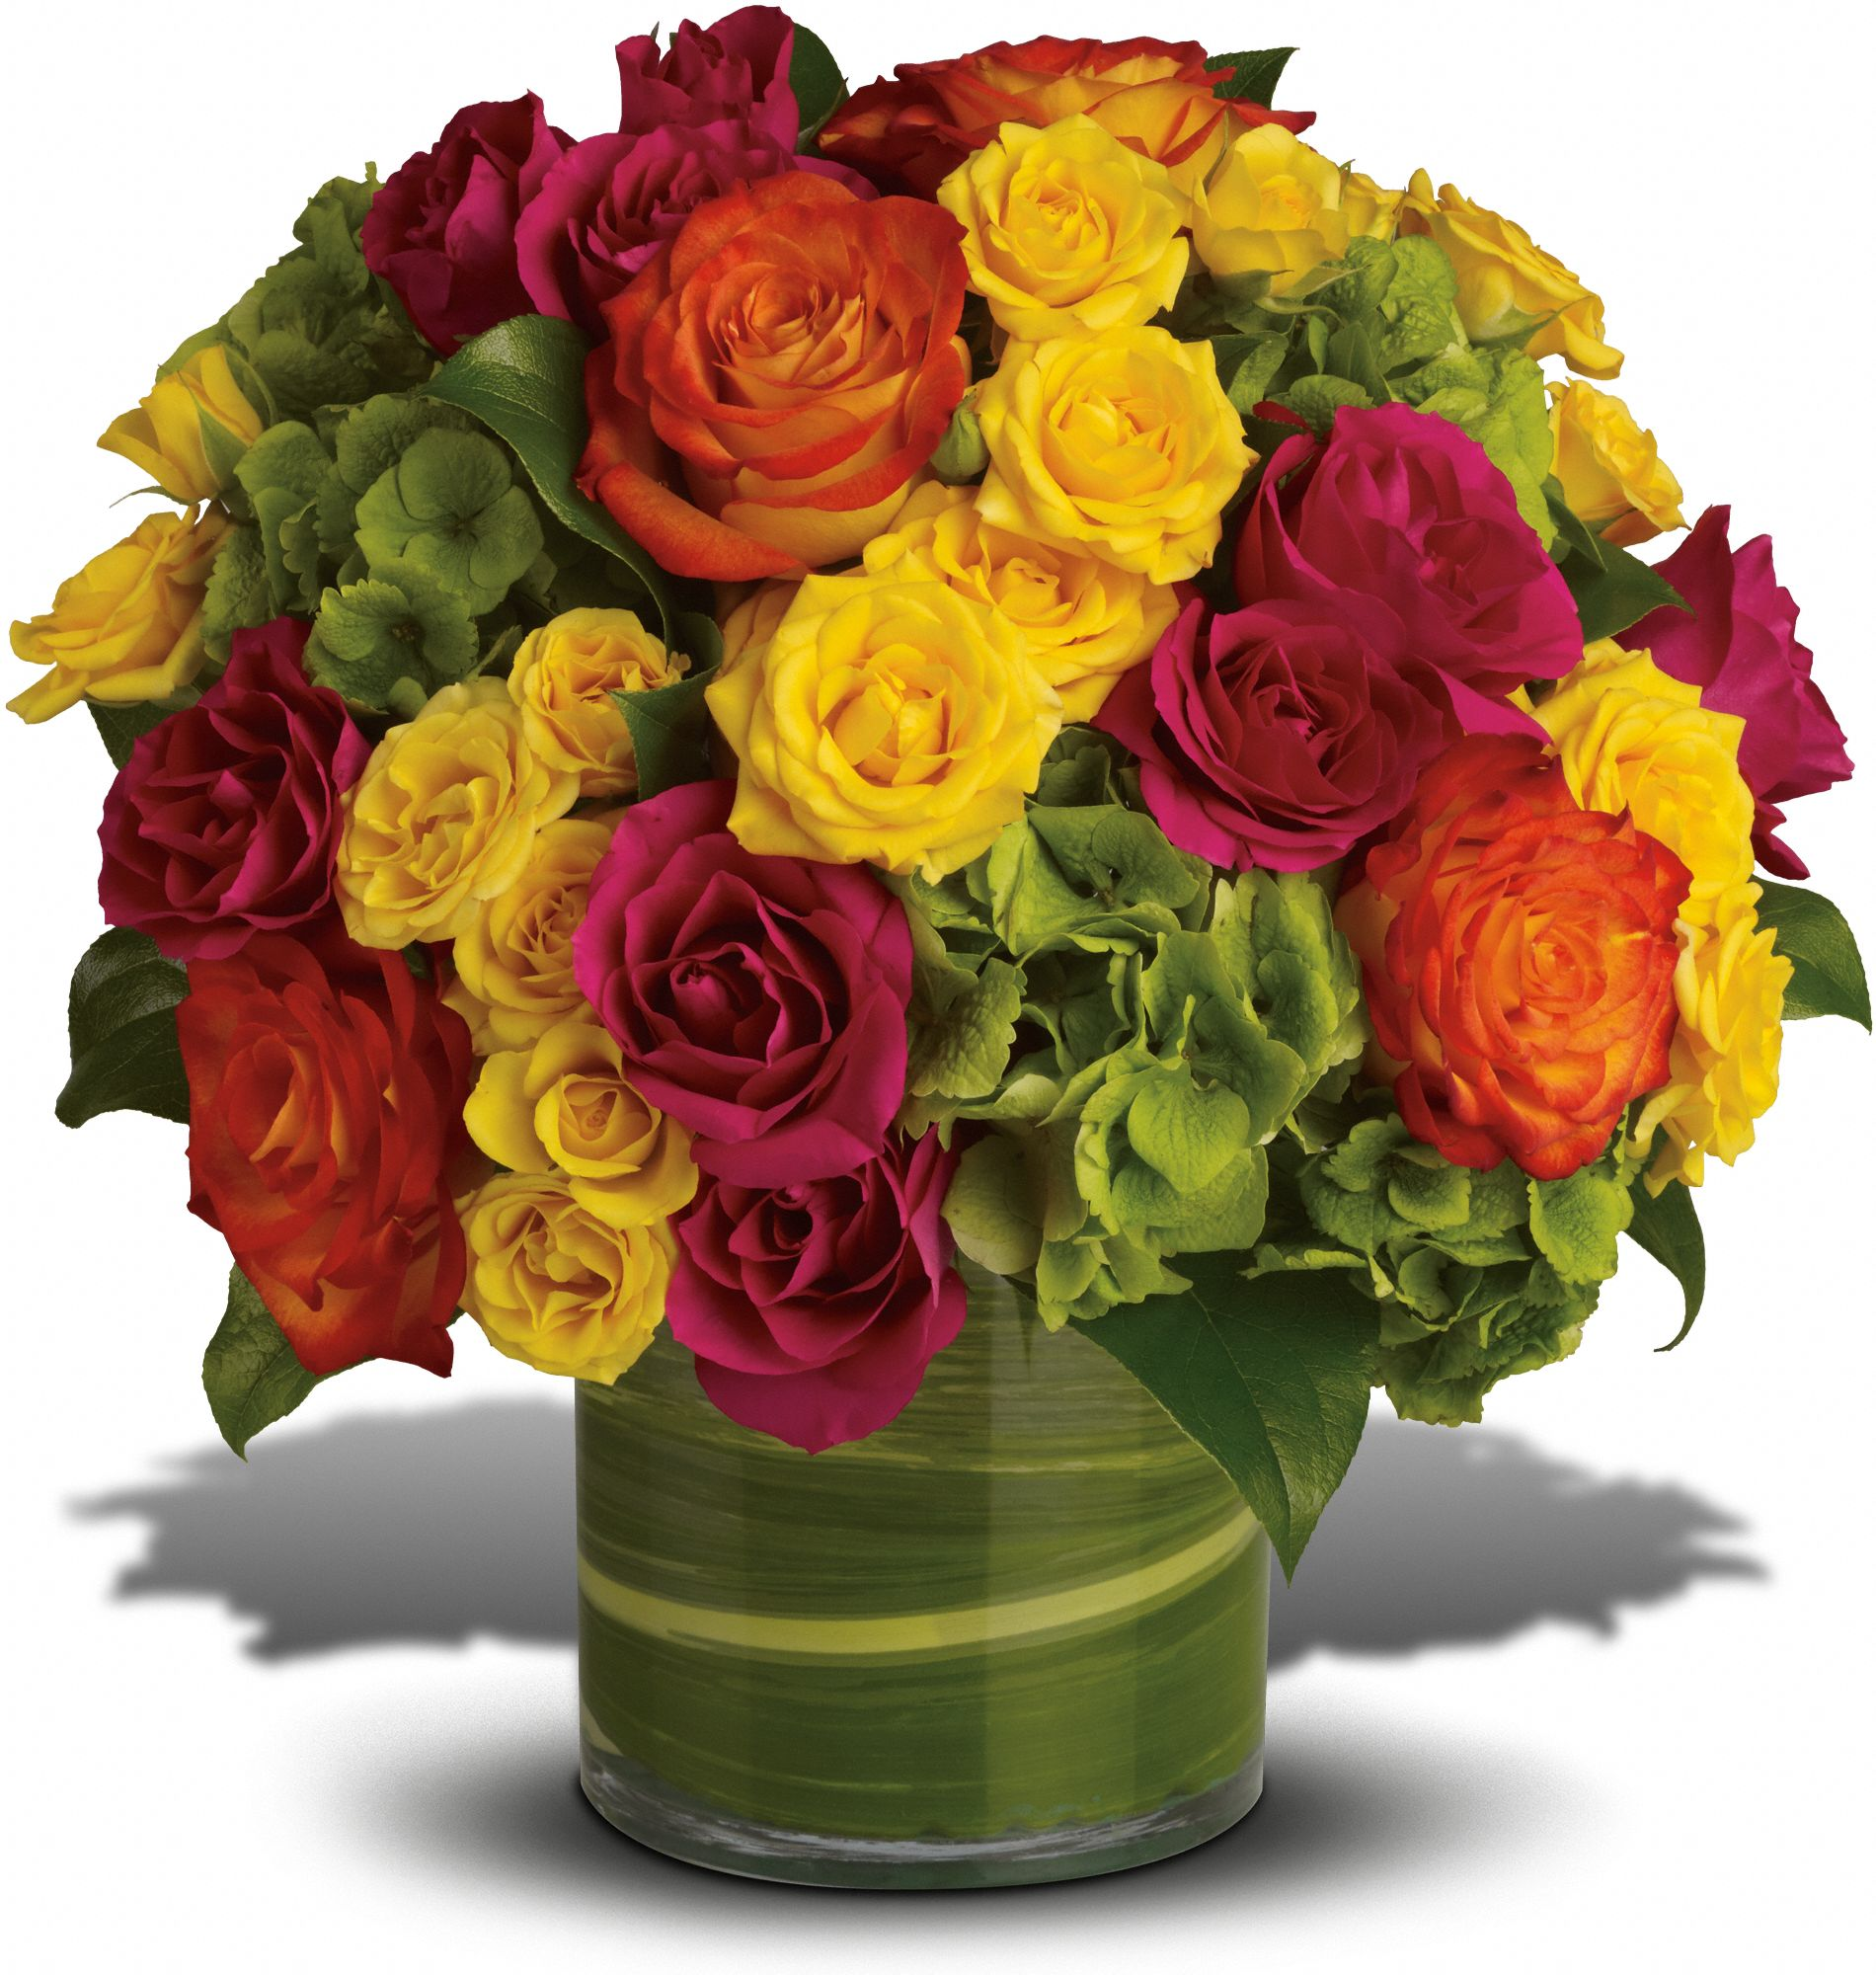 store-hours-orange-roses-yellow -spray-roses